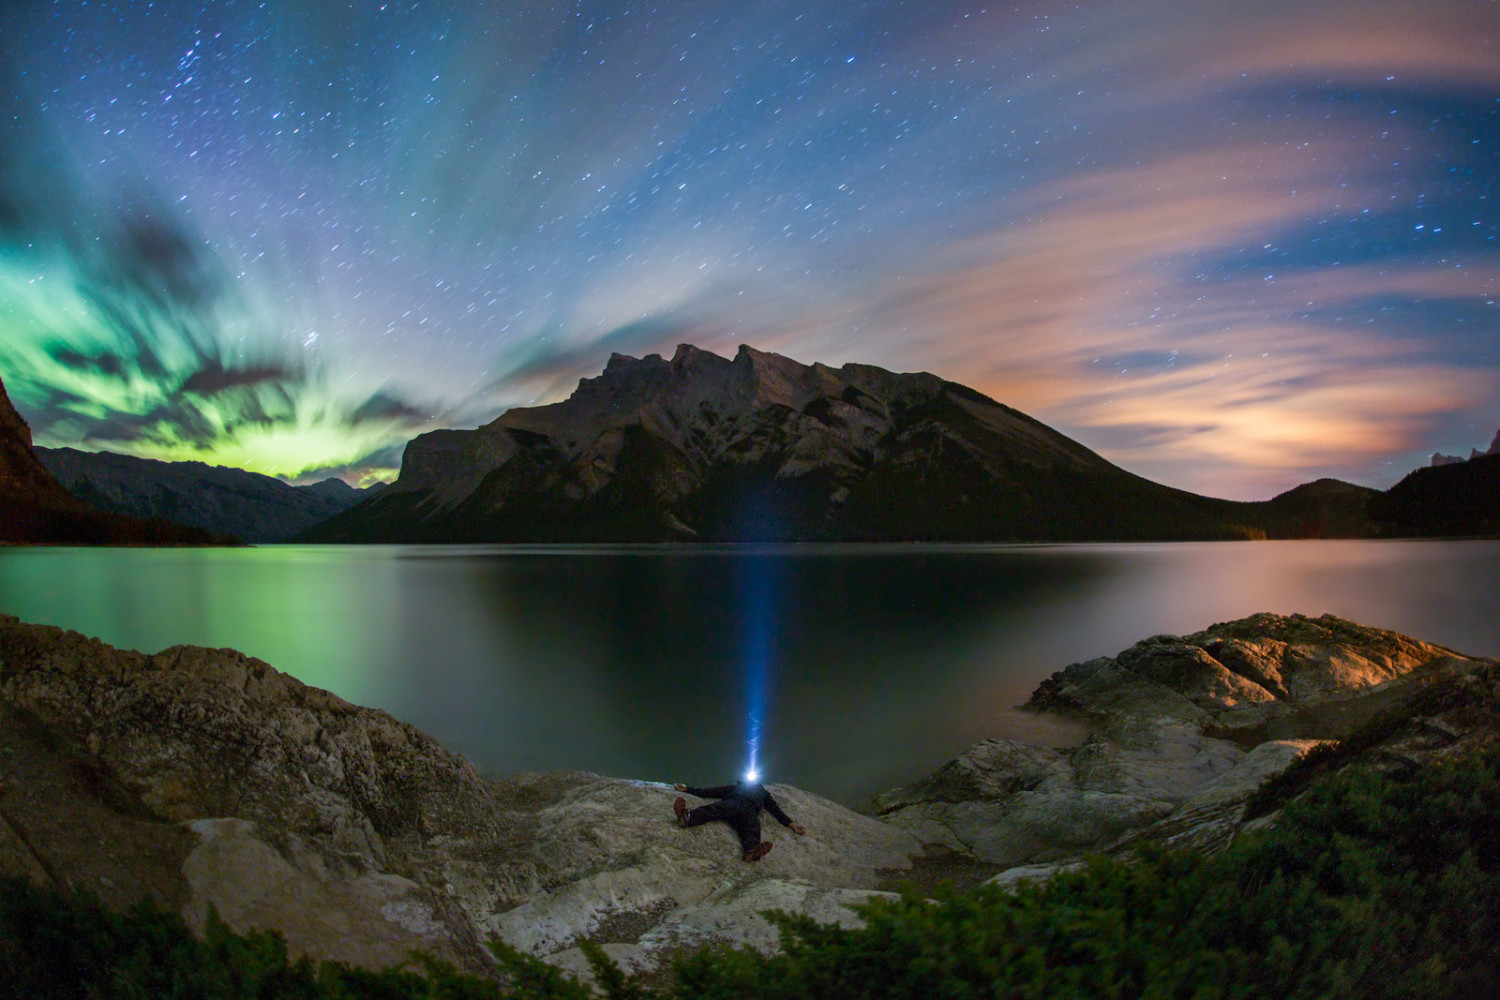 Getting Creative with Aurora Photography